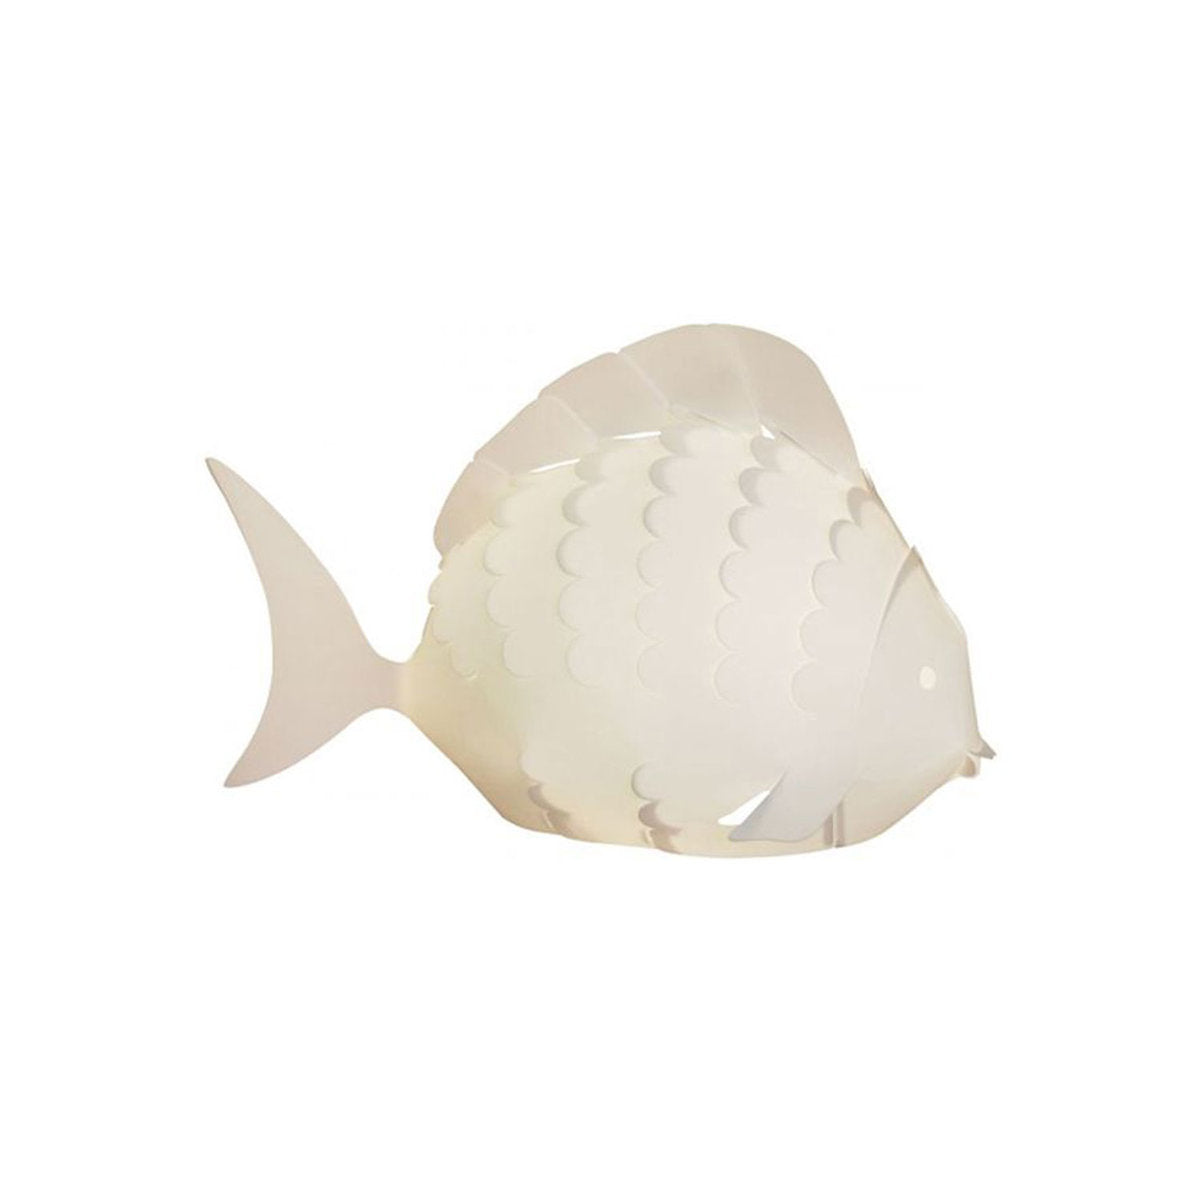 Zoolight DIY led light, fish